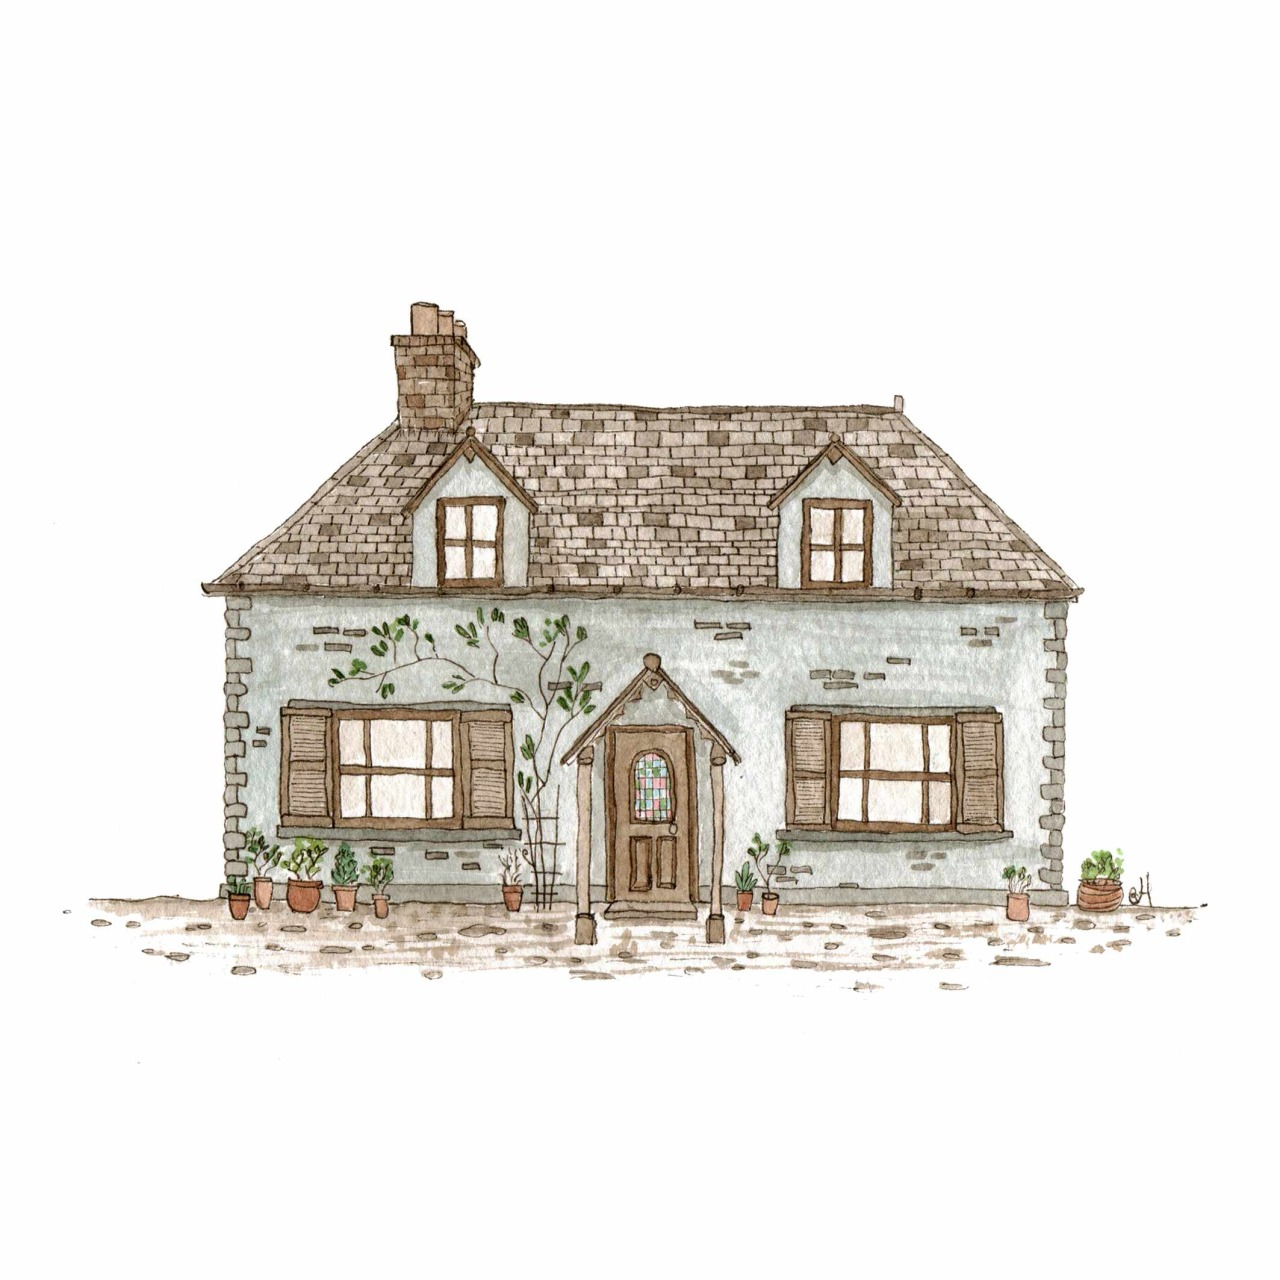 374 stained glass house Draw your house